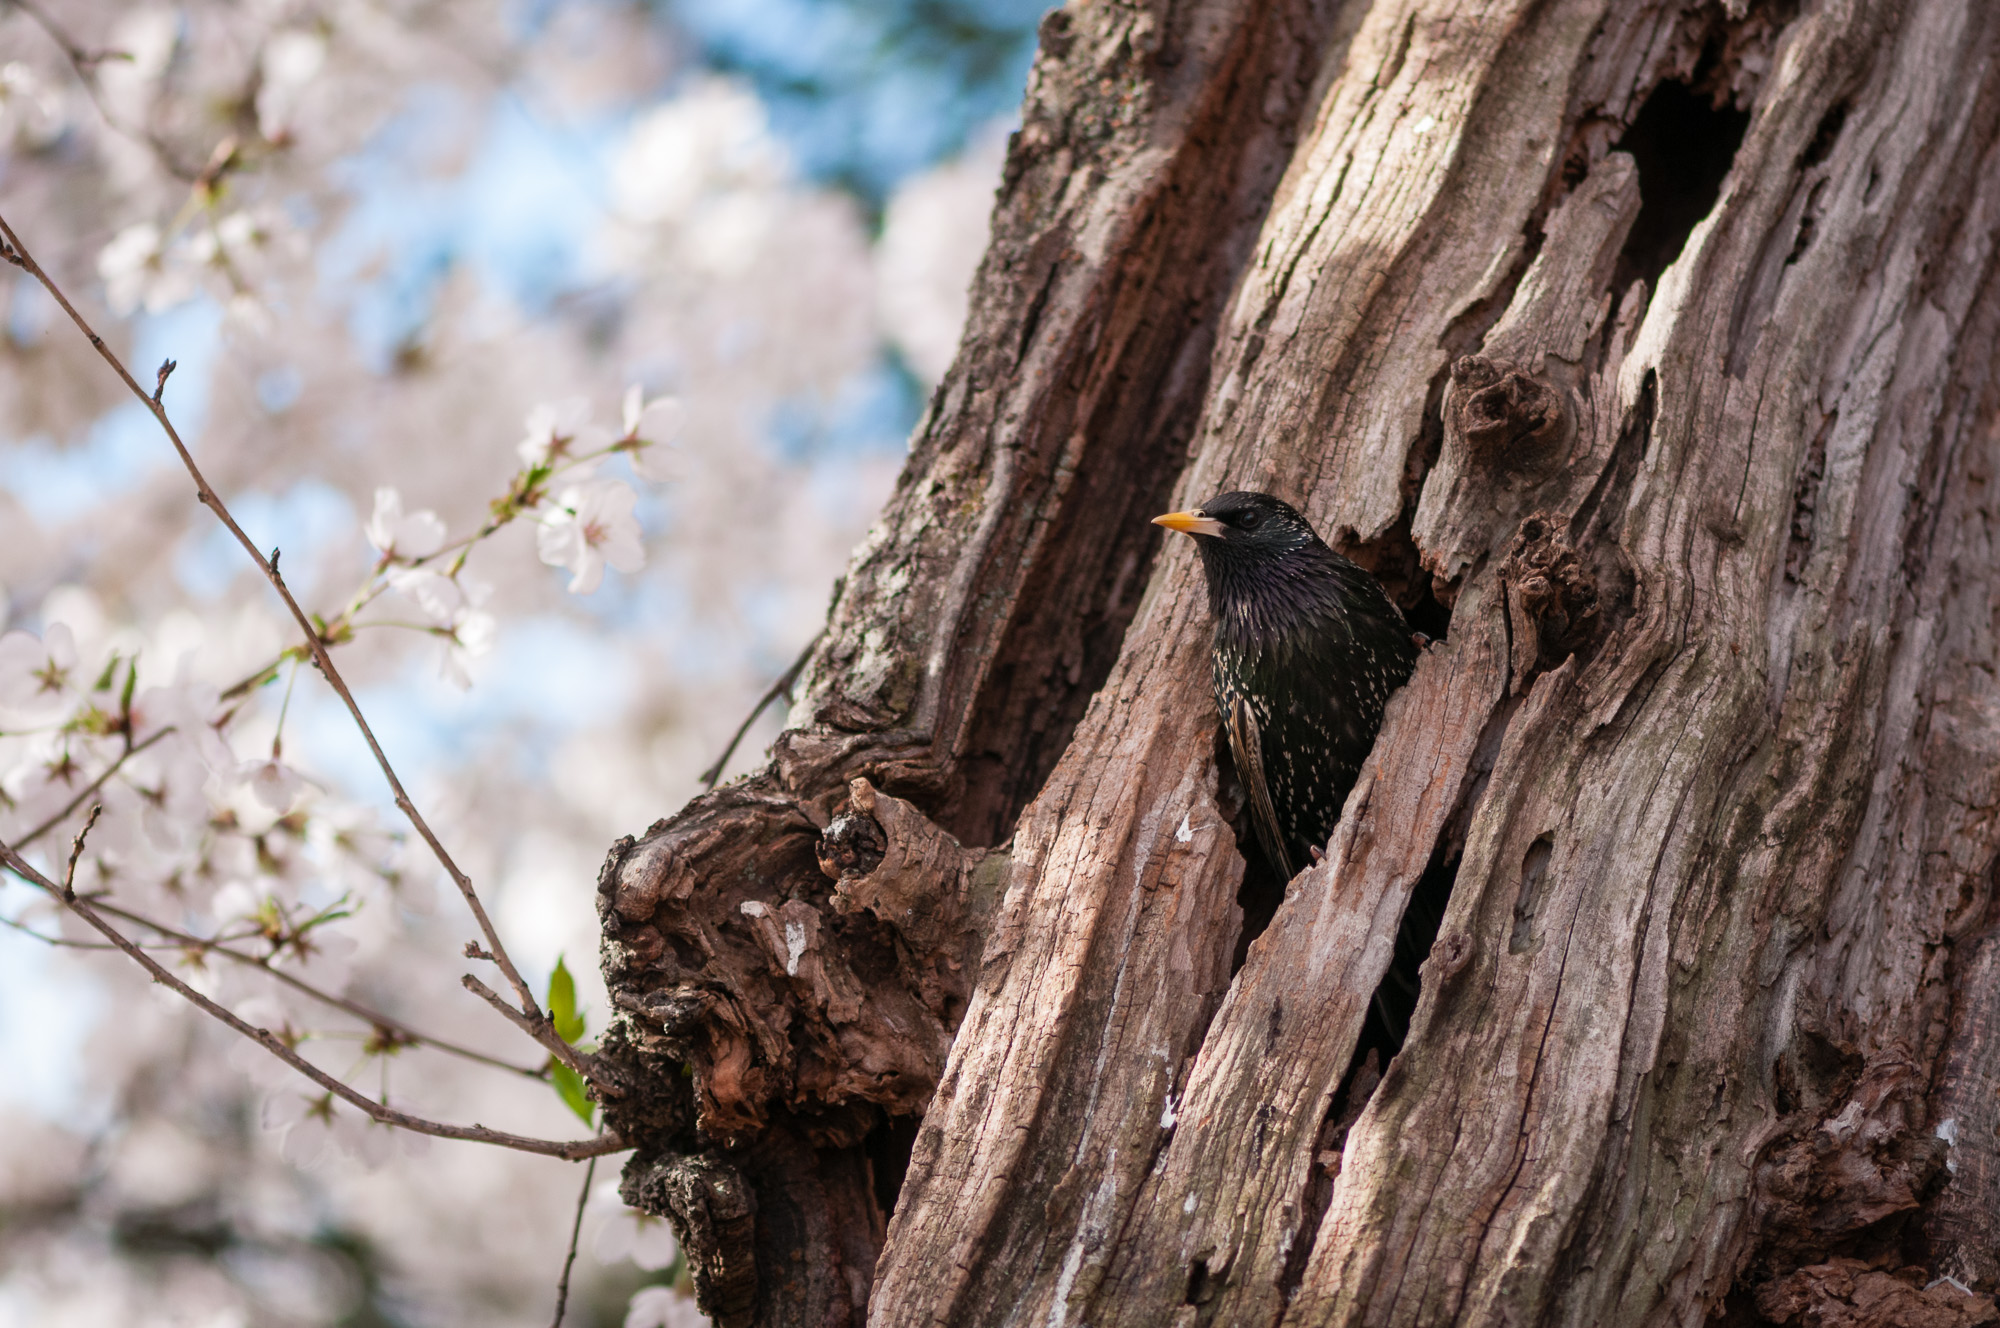 European Starling peeking out of its nesting hole in a cherry tree.